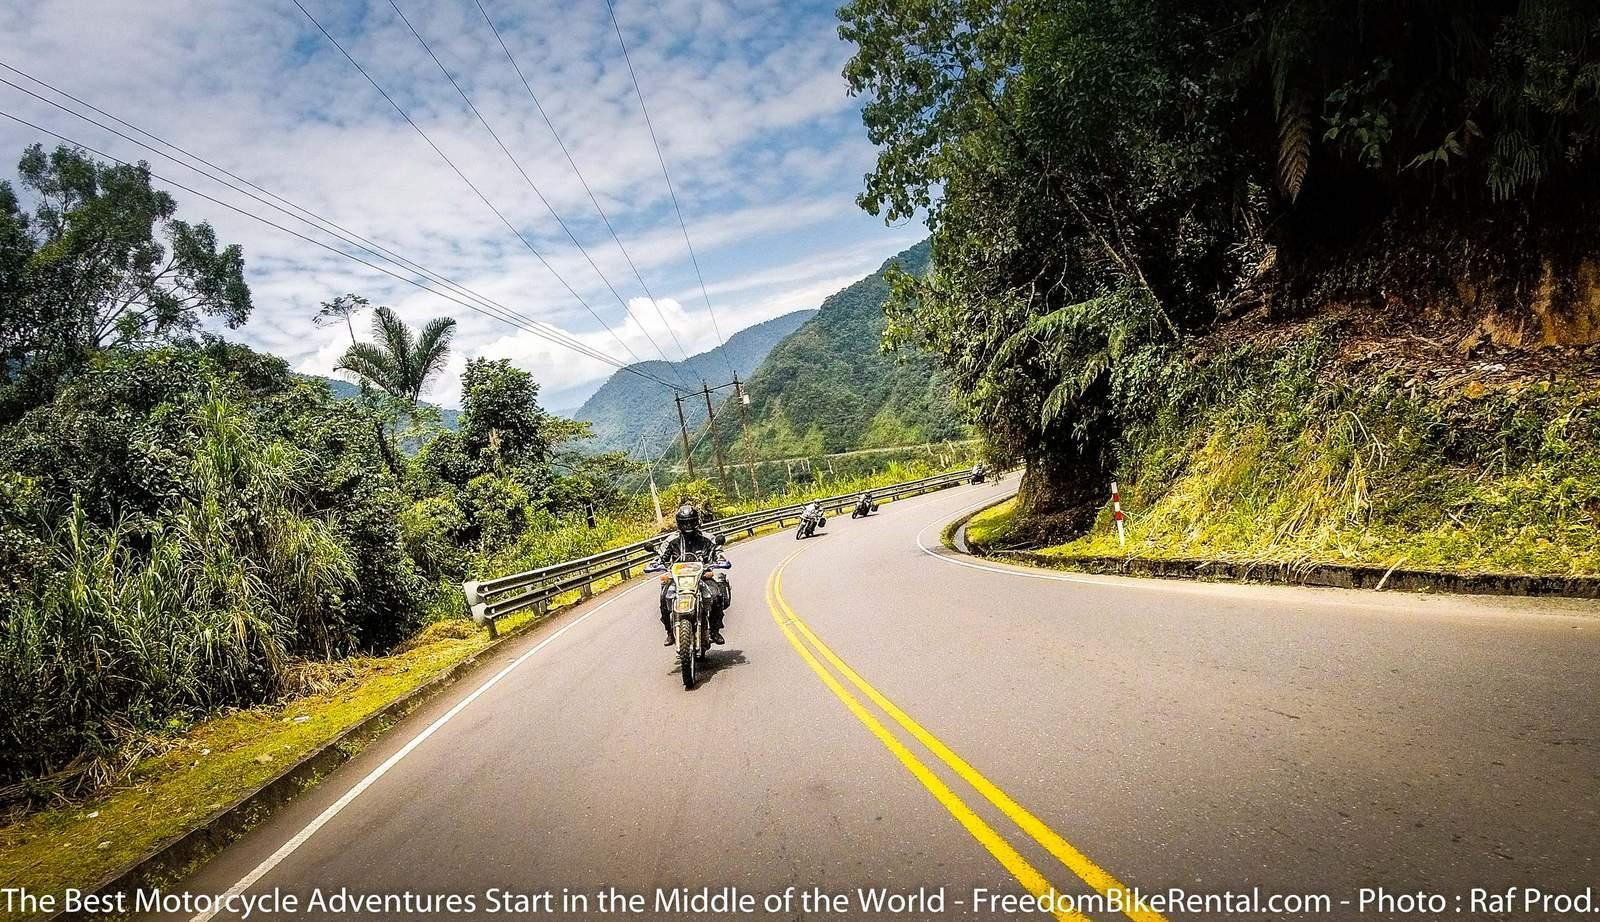 Group Motorcycle tour on paved road in Ecuador